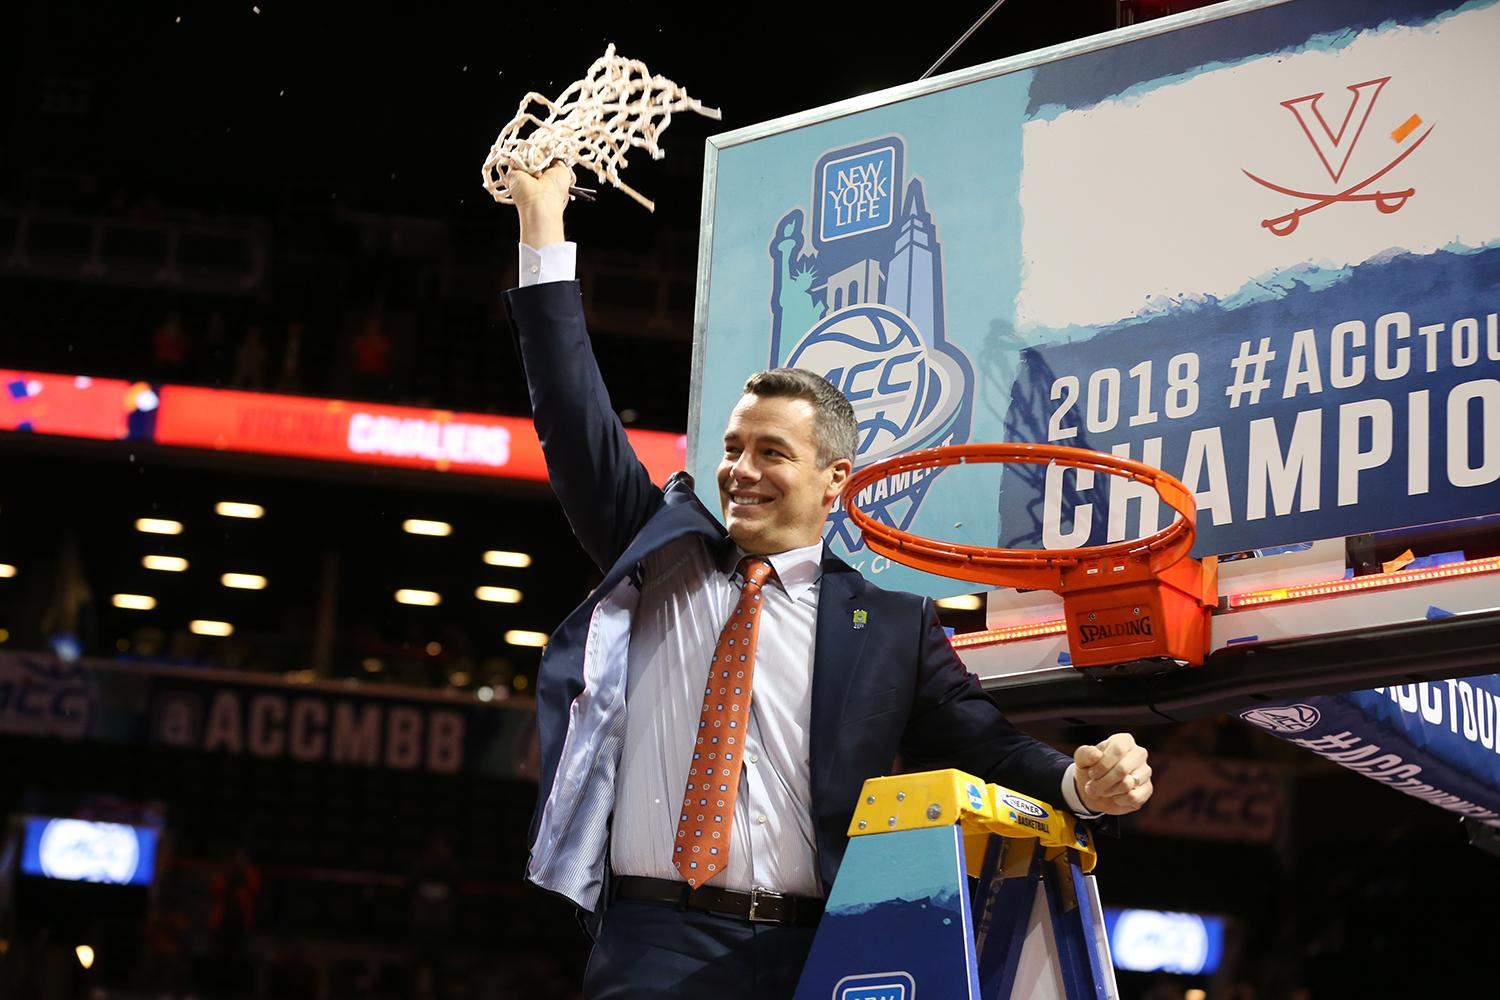 When he's on the recruiting trail, UVA basketball coach Tony Bennett isn't just looking for players who can jump the highest or make the most 3-pointers.